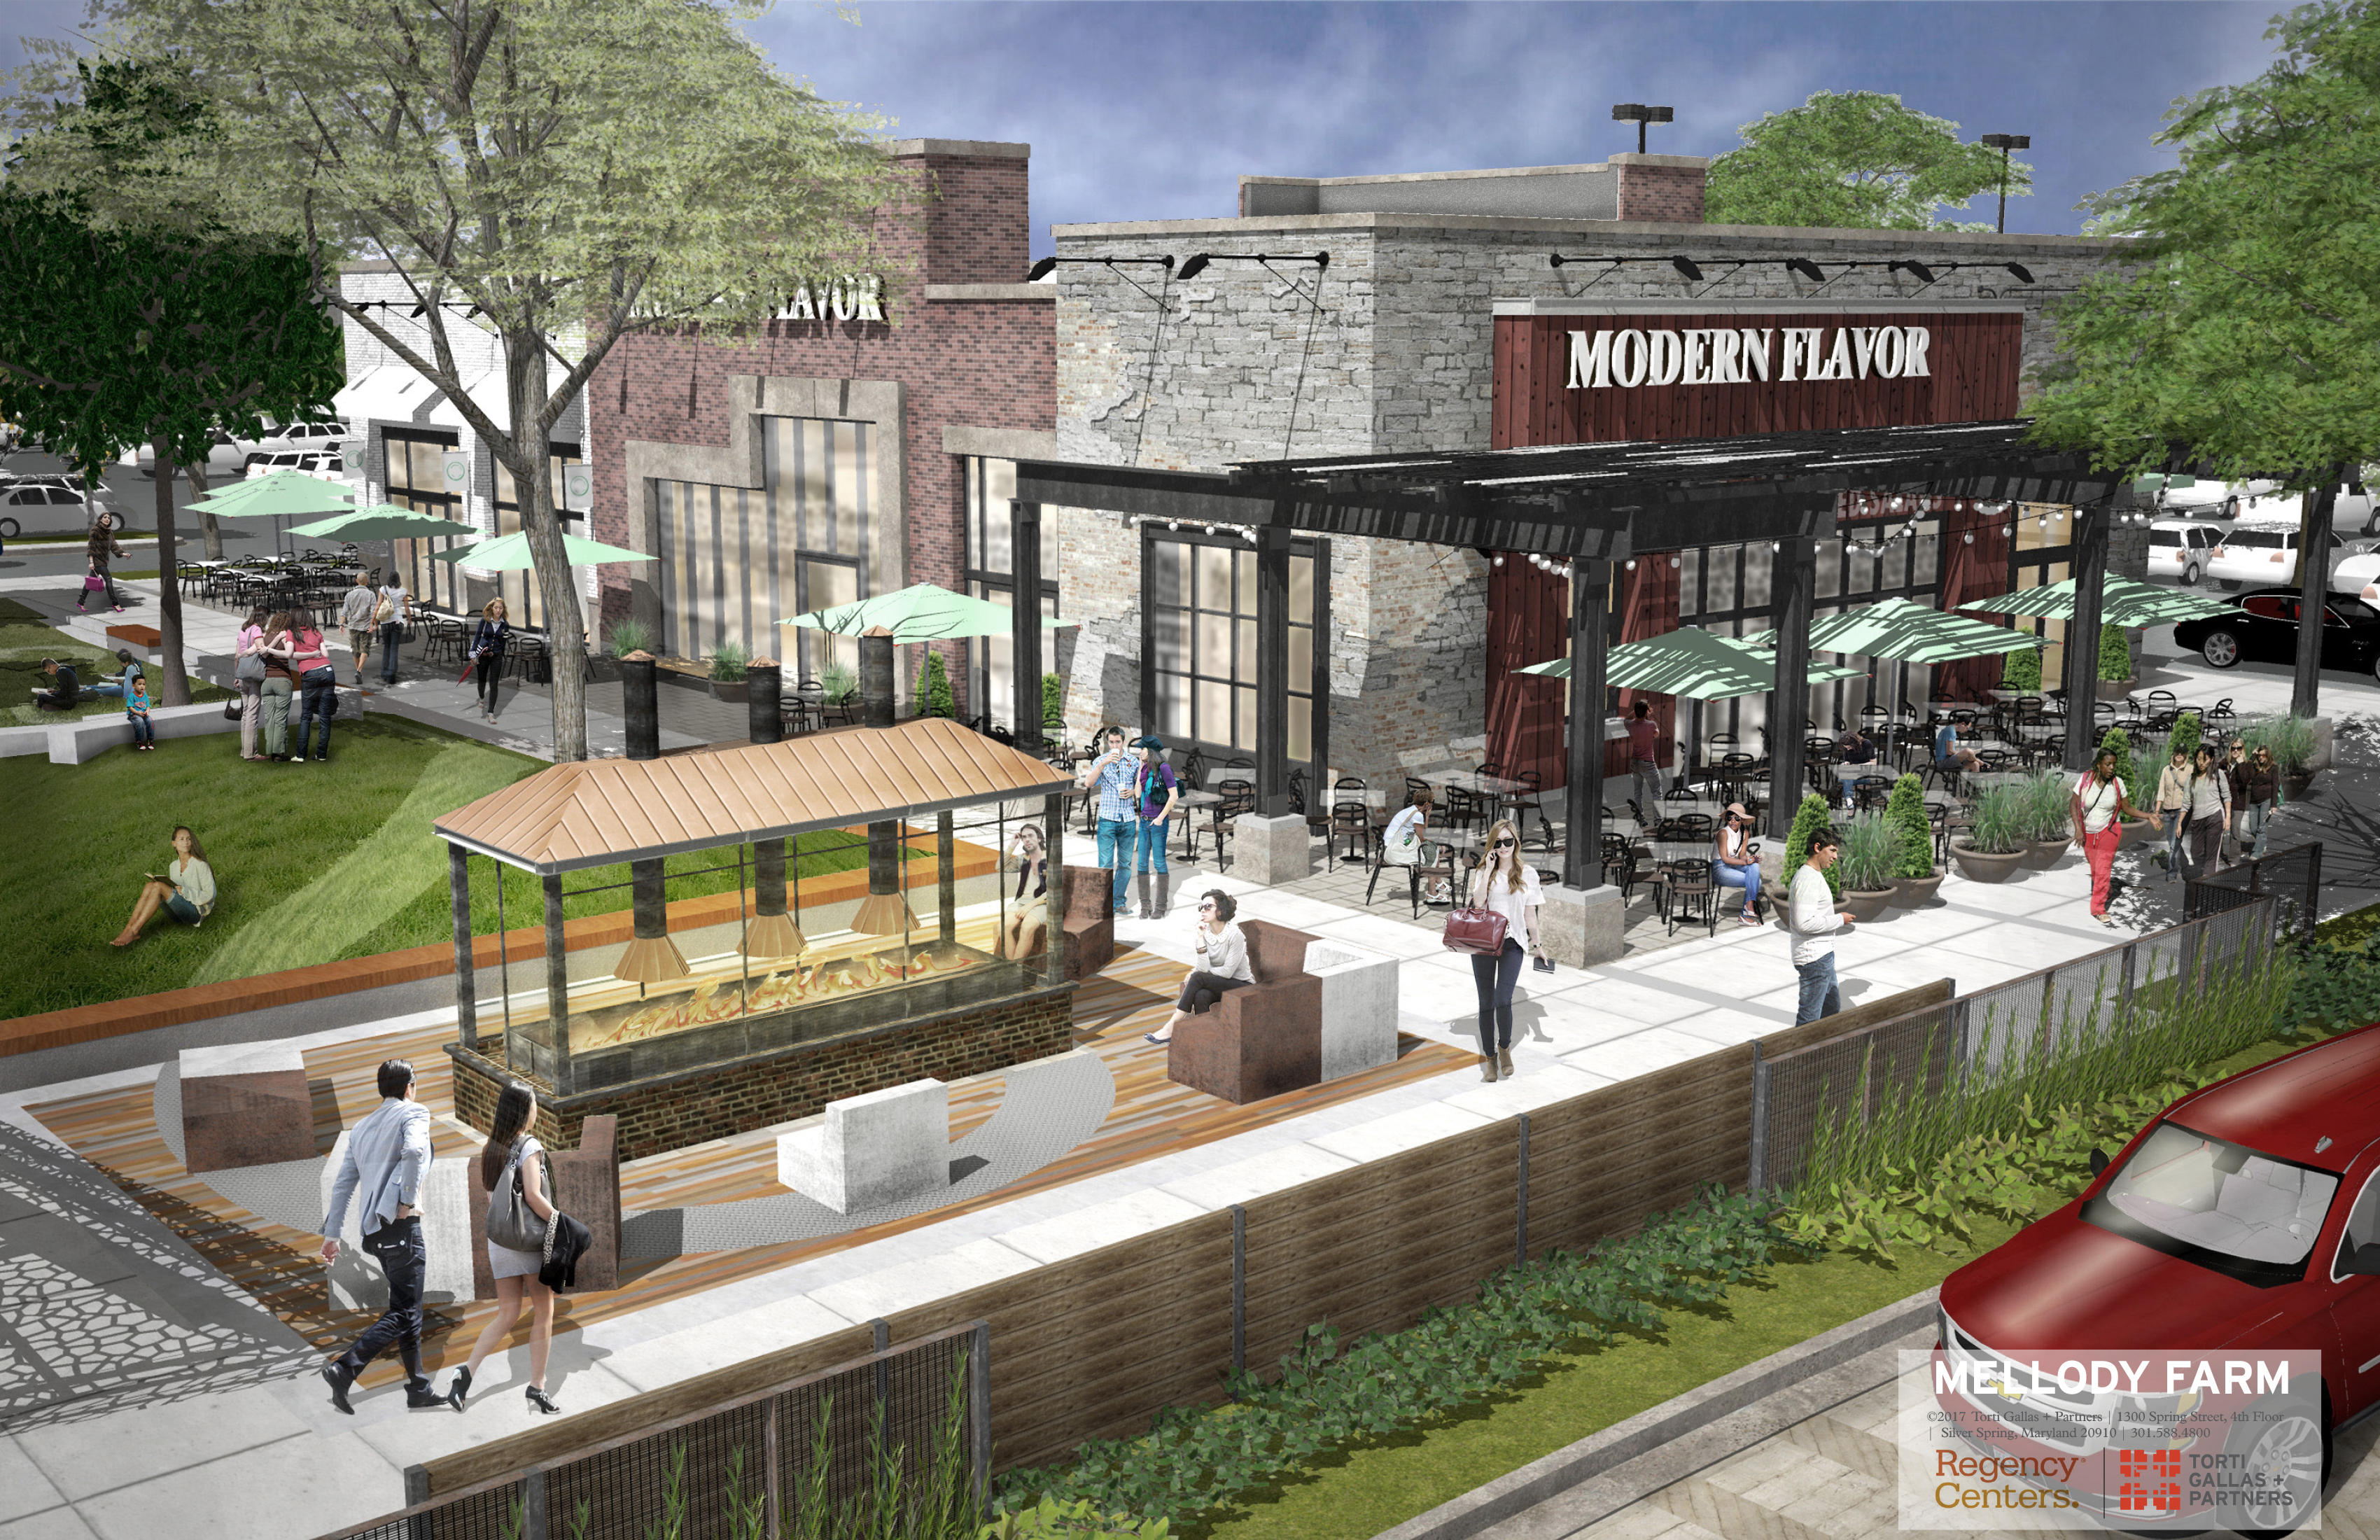 Regency Centers Announces Mellody Farm A New Mixed Use Development In The Greater Chicagoland Area Business Wire